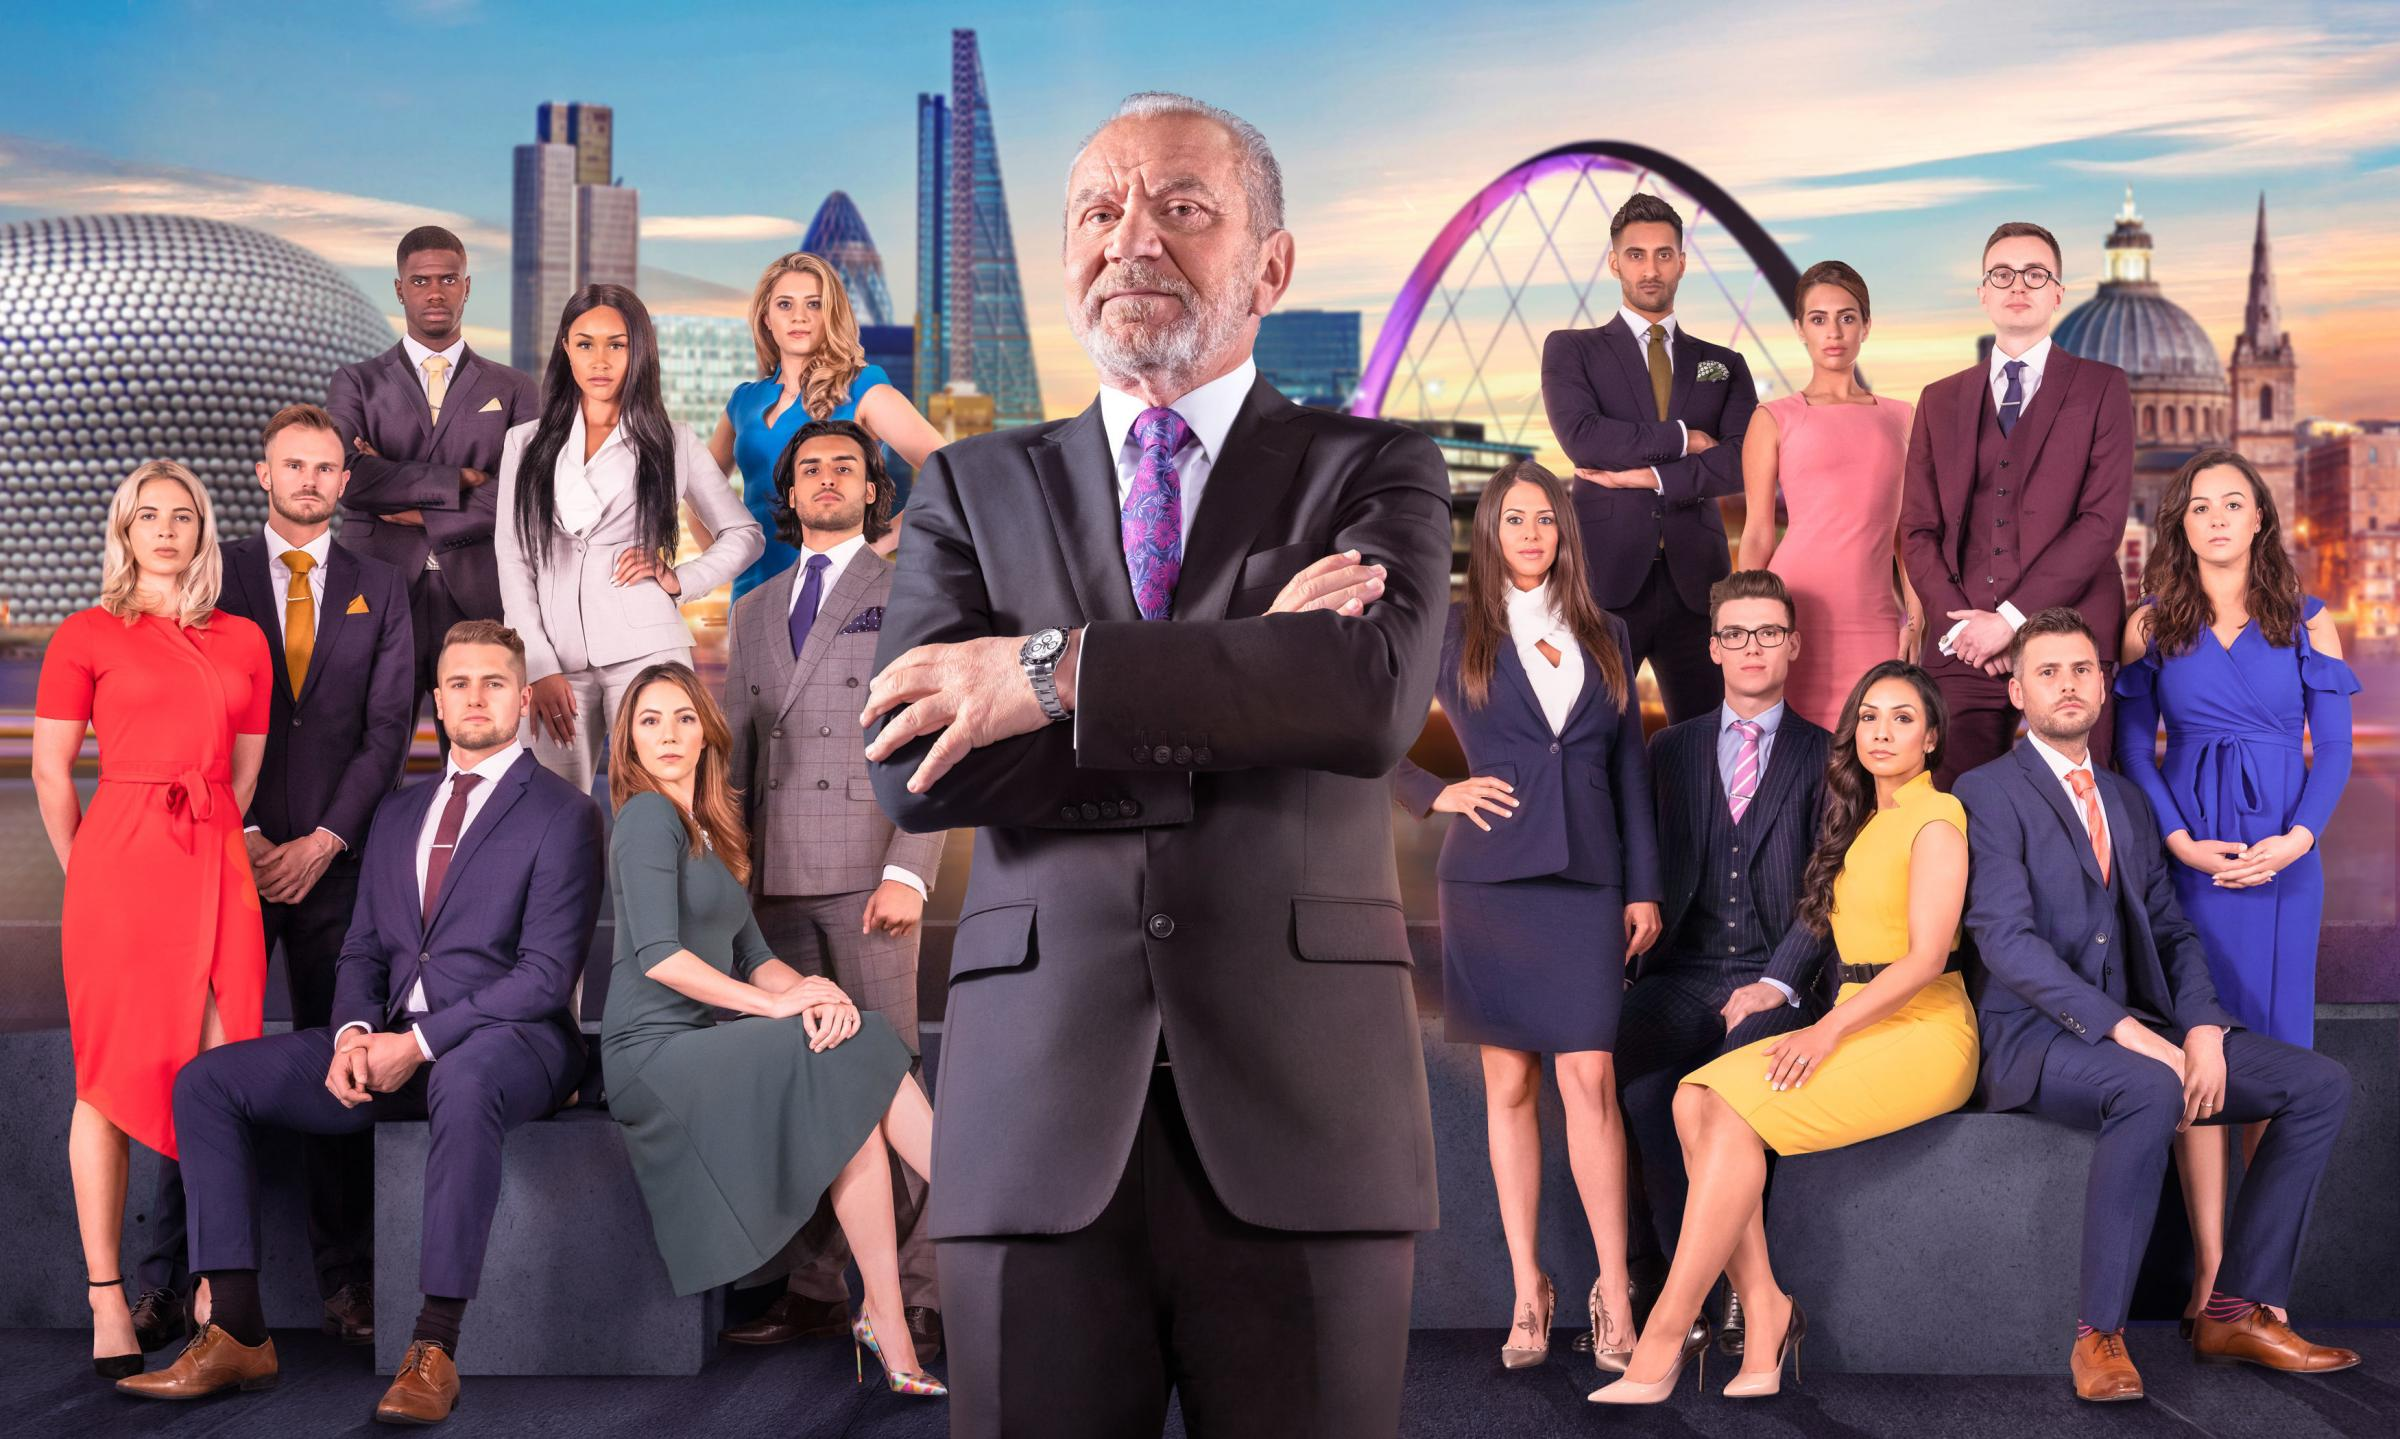 Lord Sugar with The Apprentice candidates.